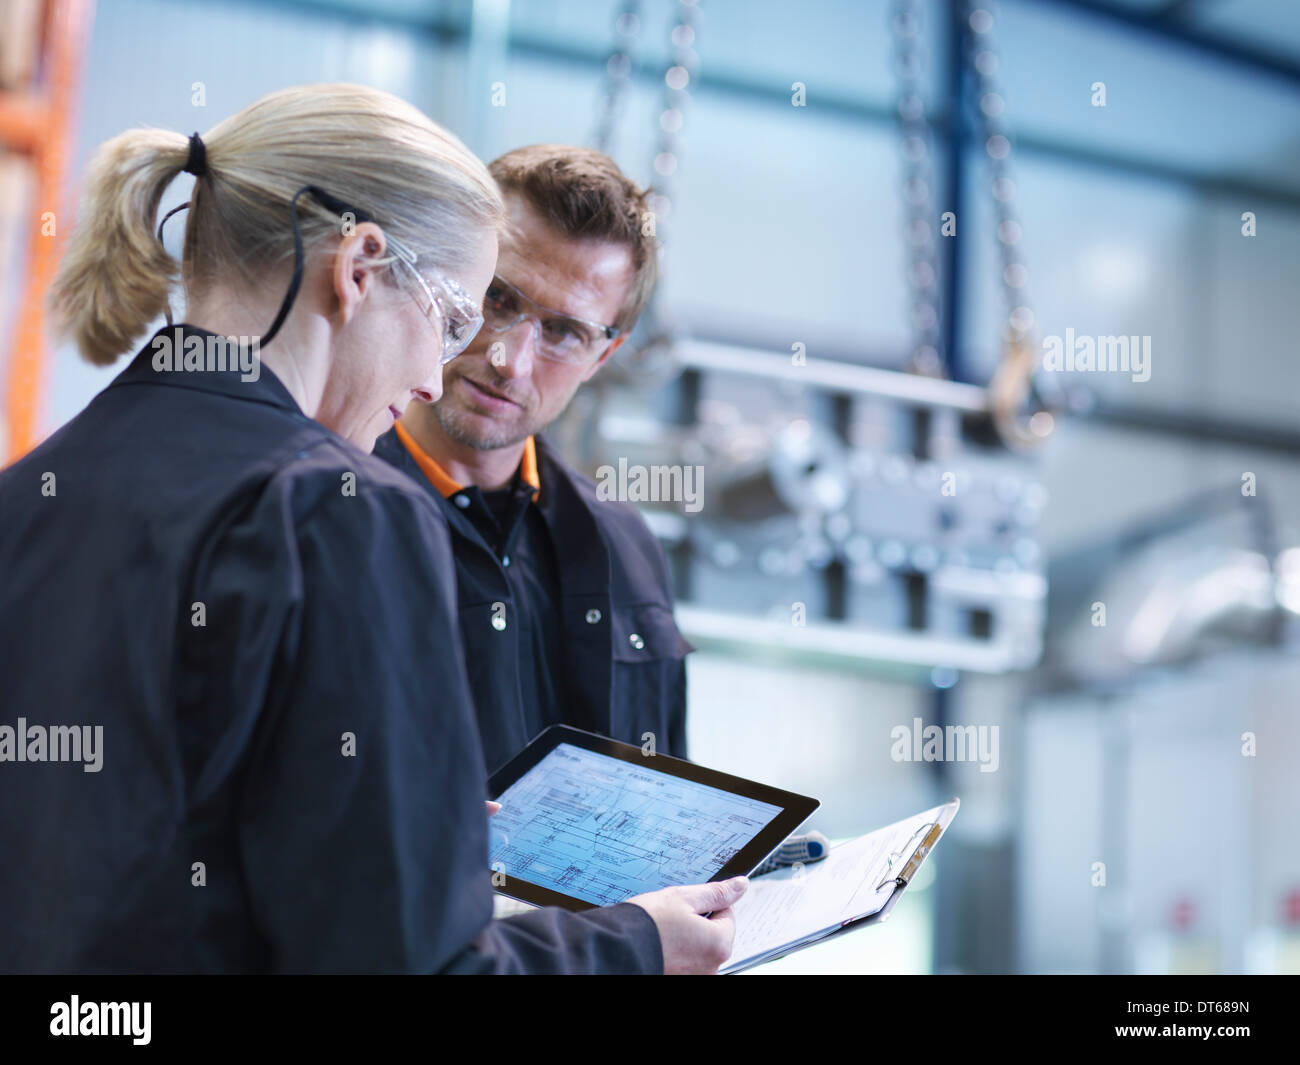 Inspecter les plans des ingénieurs sur digital tablet in engineering factory Photo Stock